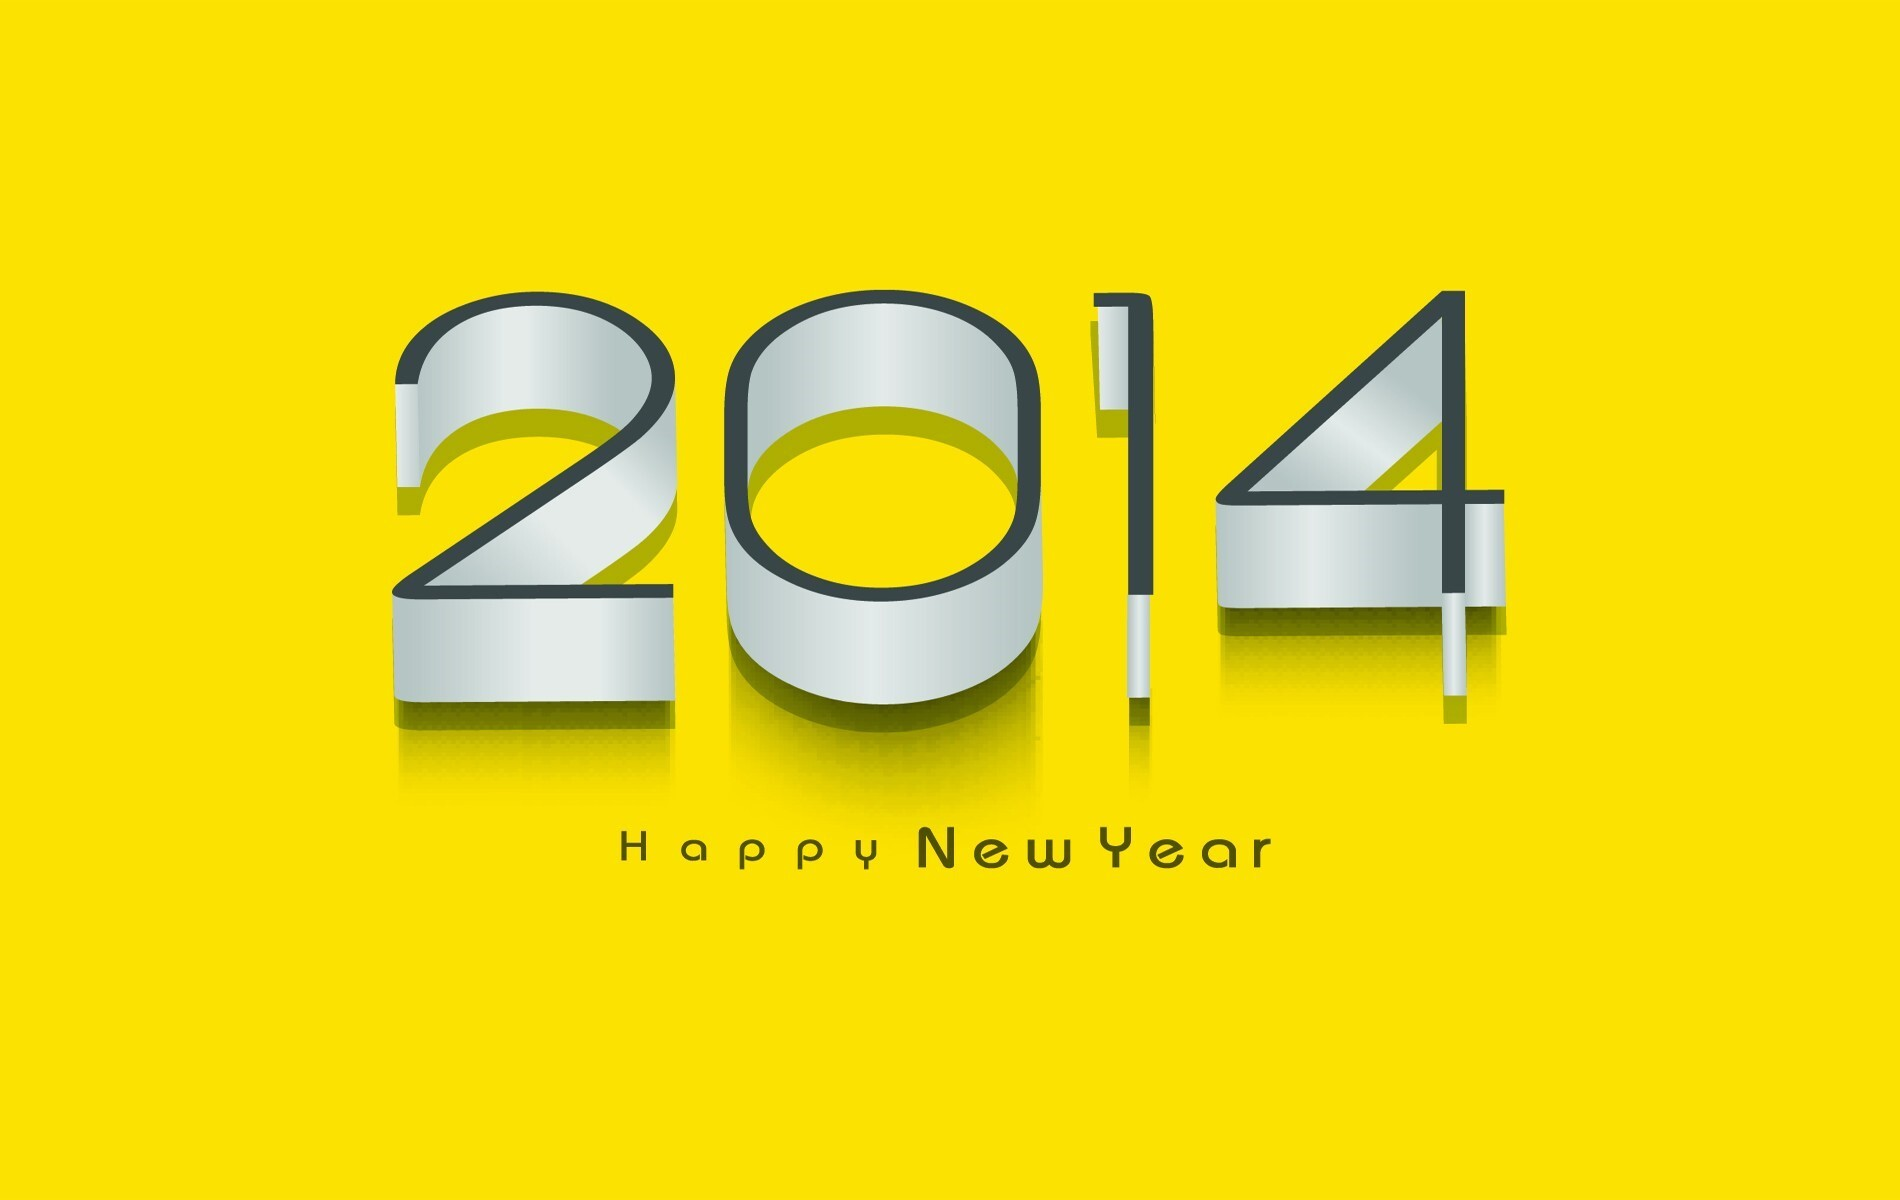 holiday happy new year 2014 photos in yellow background hd wallpapers